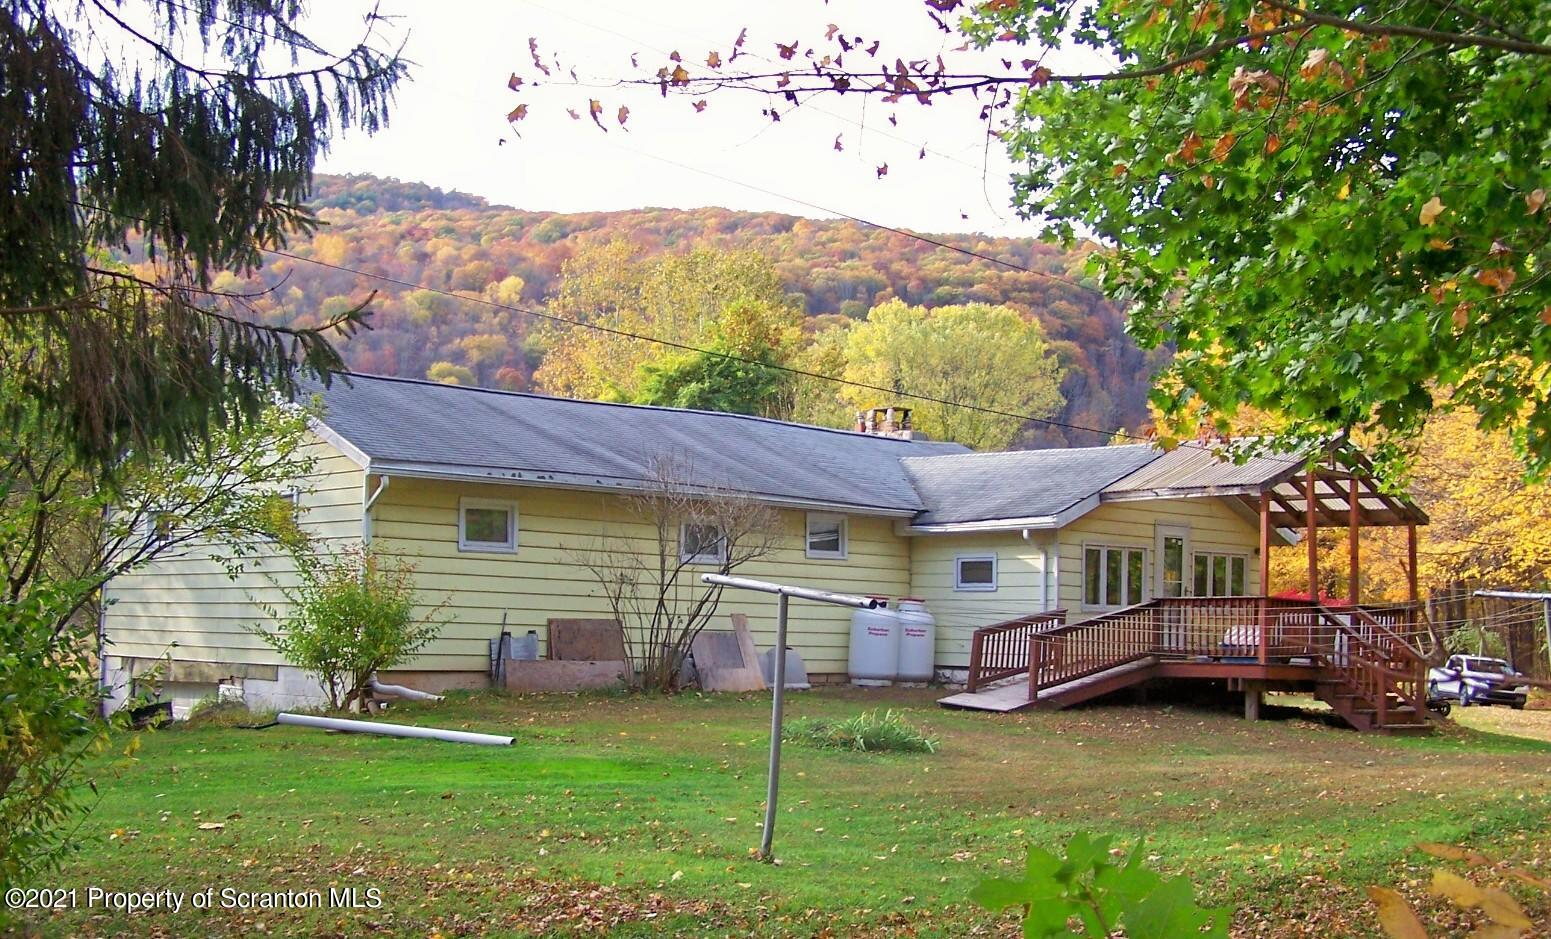 249 Strohl Ln, Tunkhannock, Pennsylvania 18657, 4 Bedrooms Bedrooms, 6 Rooms Rooms,1 BathroomBathrooms,Single Family,For Sale,Strohl,21-431